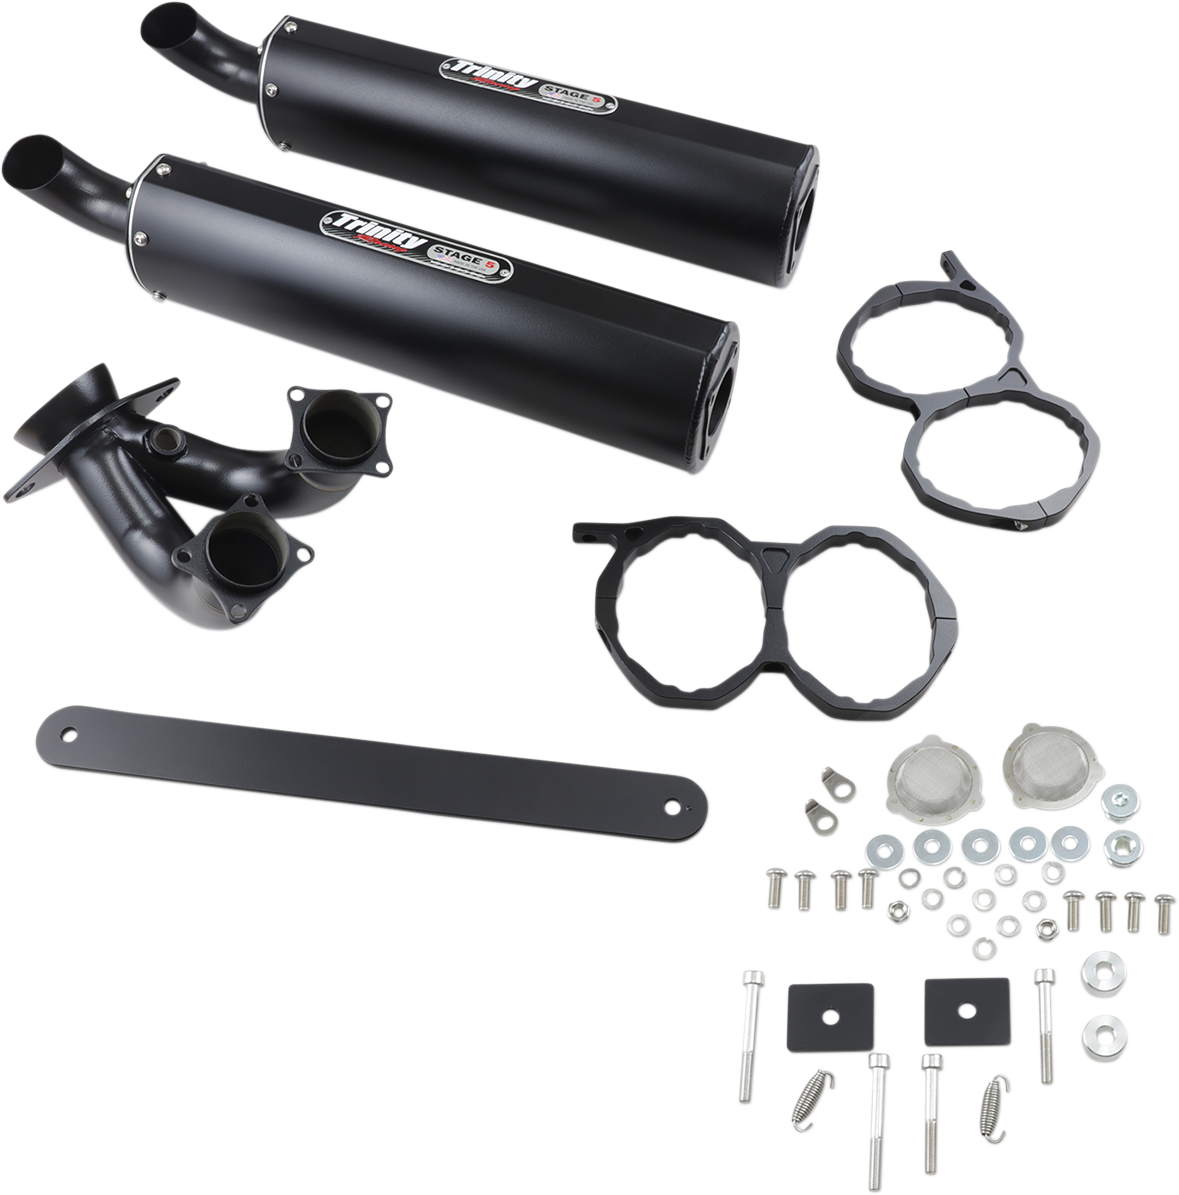 Trinity Racing Black Stage 5 Slip on Muffler for 15-19 Polaris RZR XP 1000 4x4